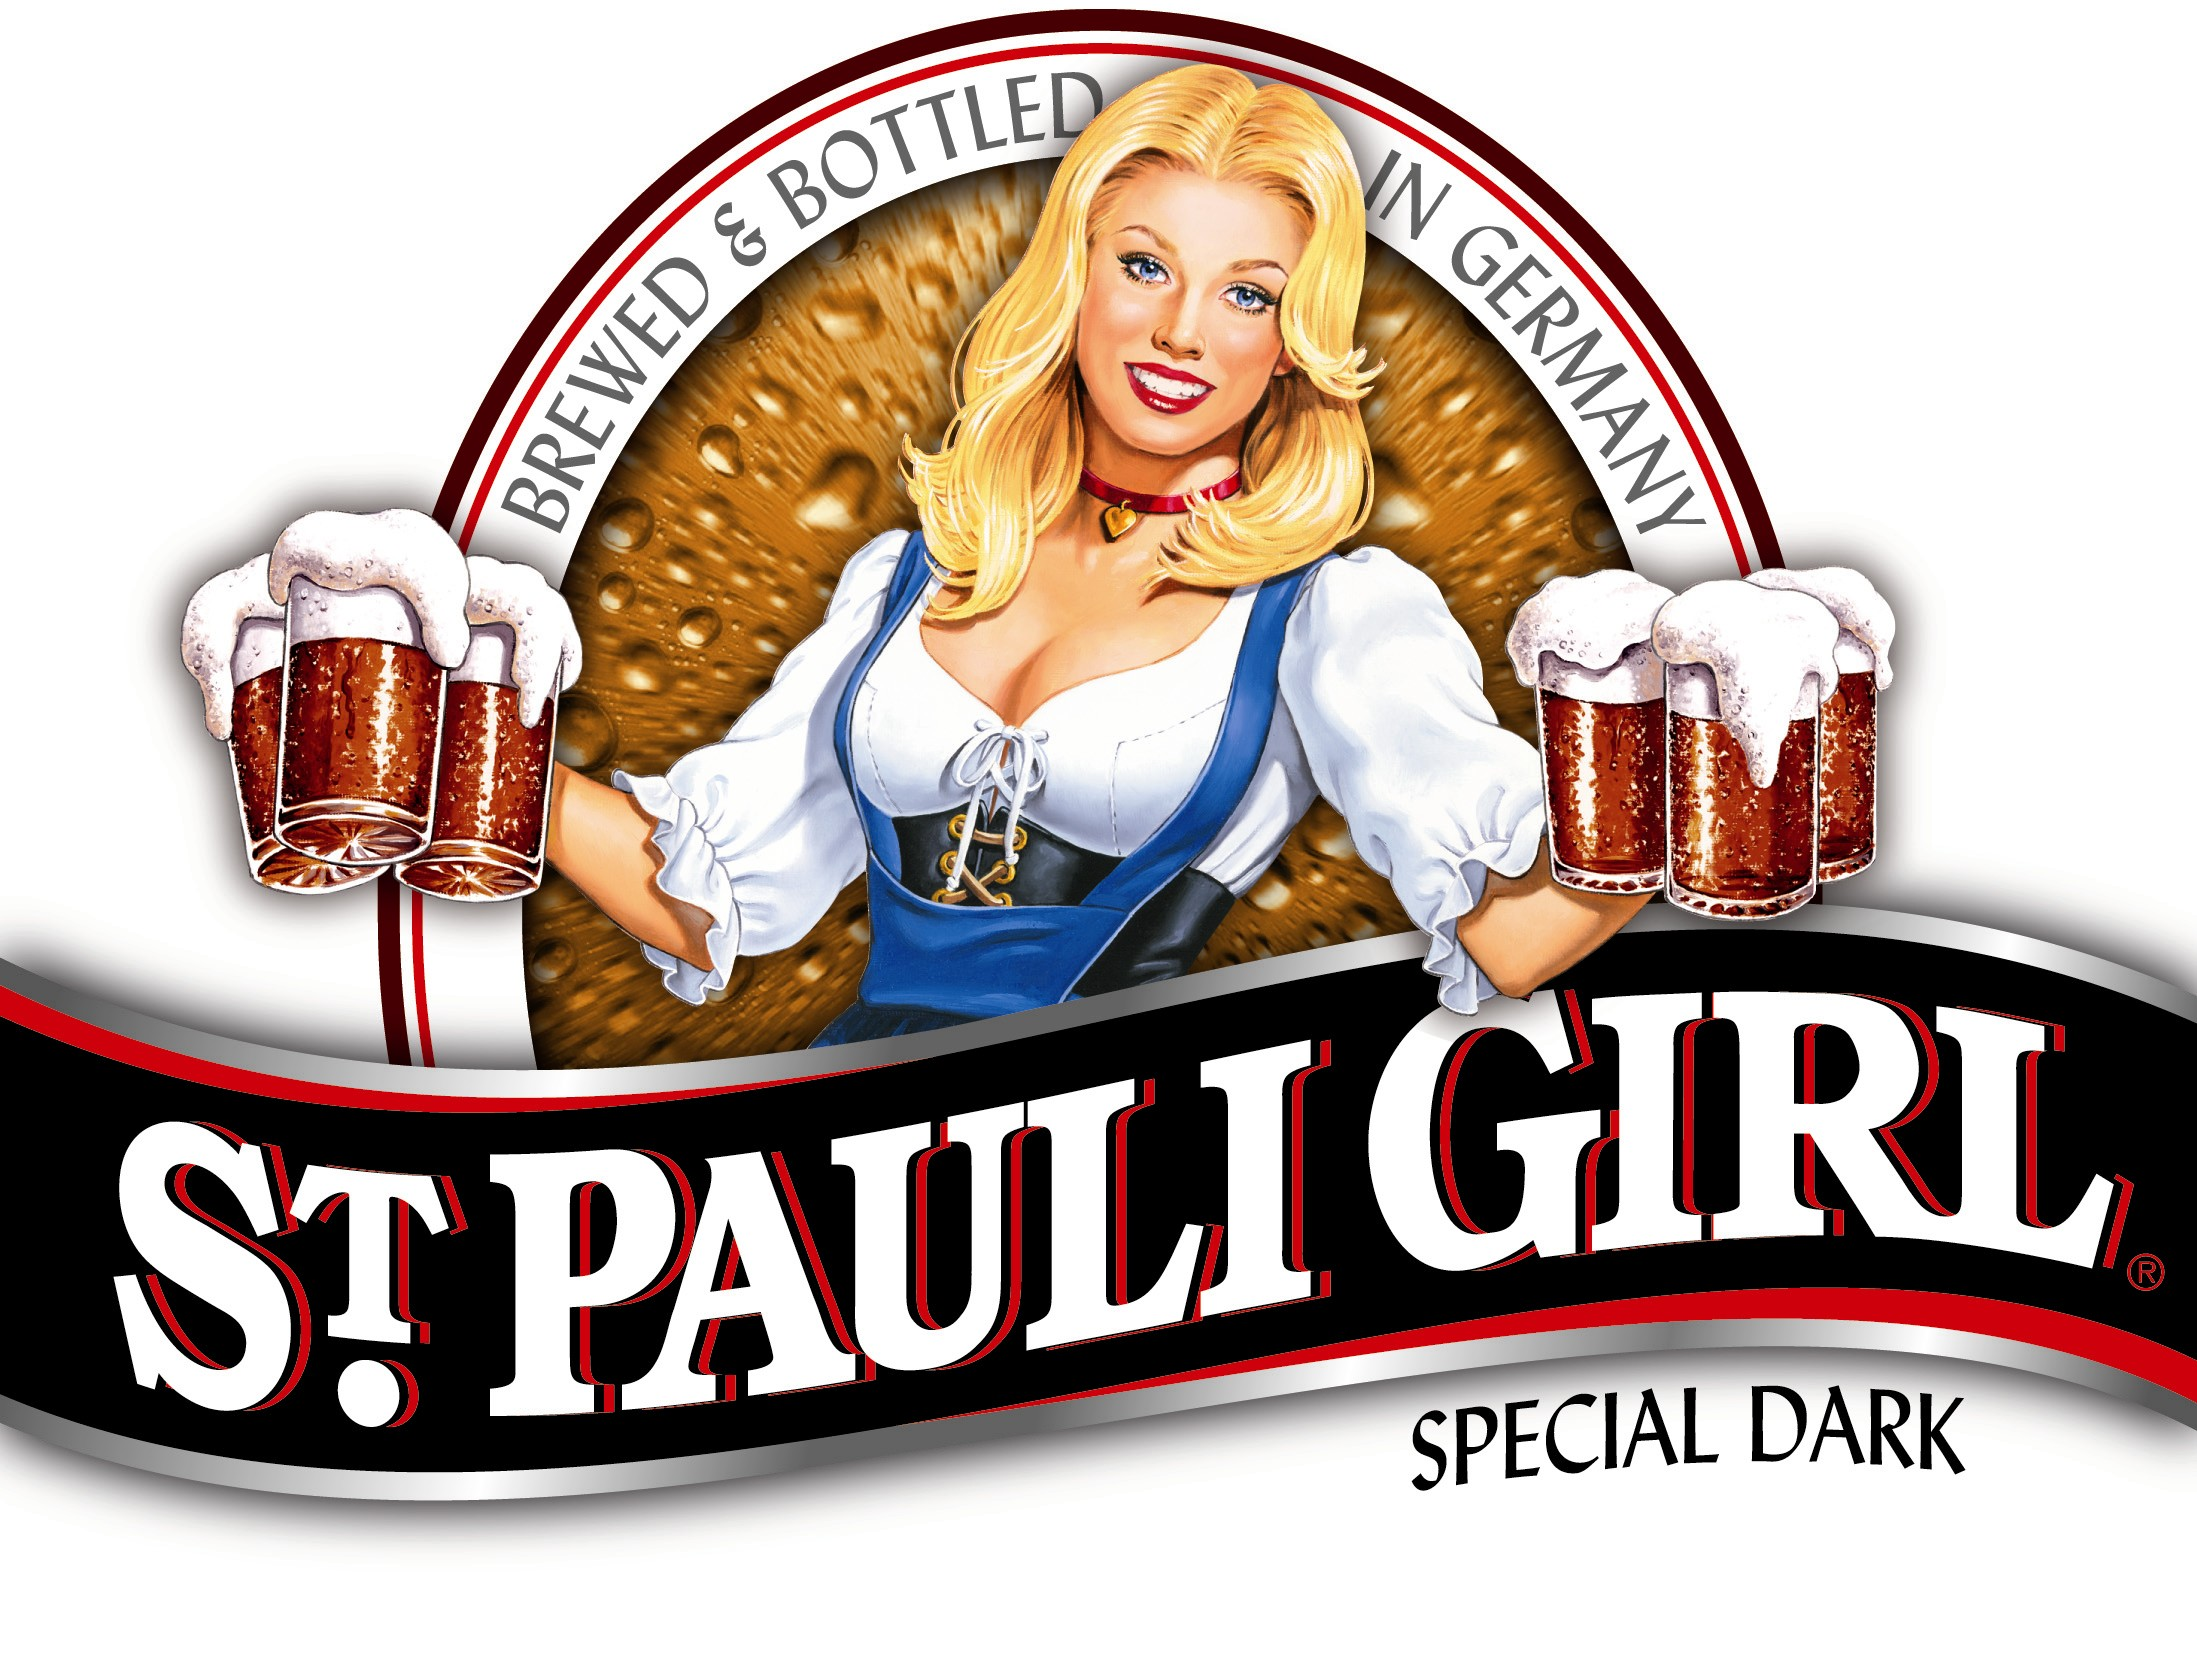 st-pauli-girl-beer-logo